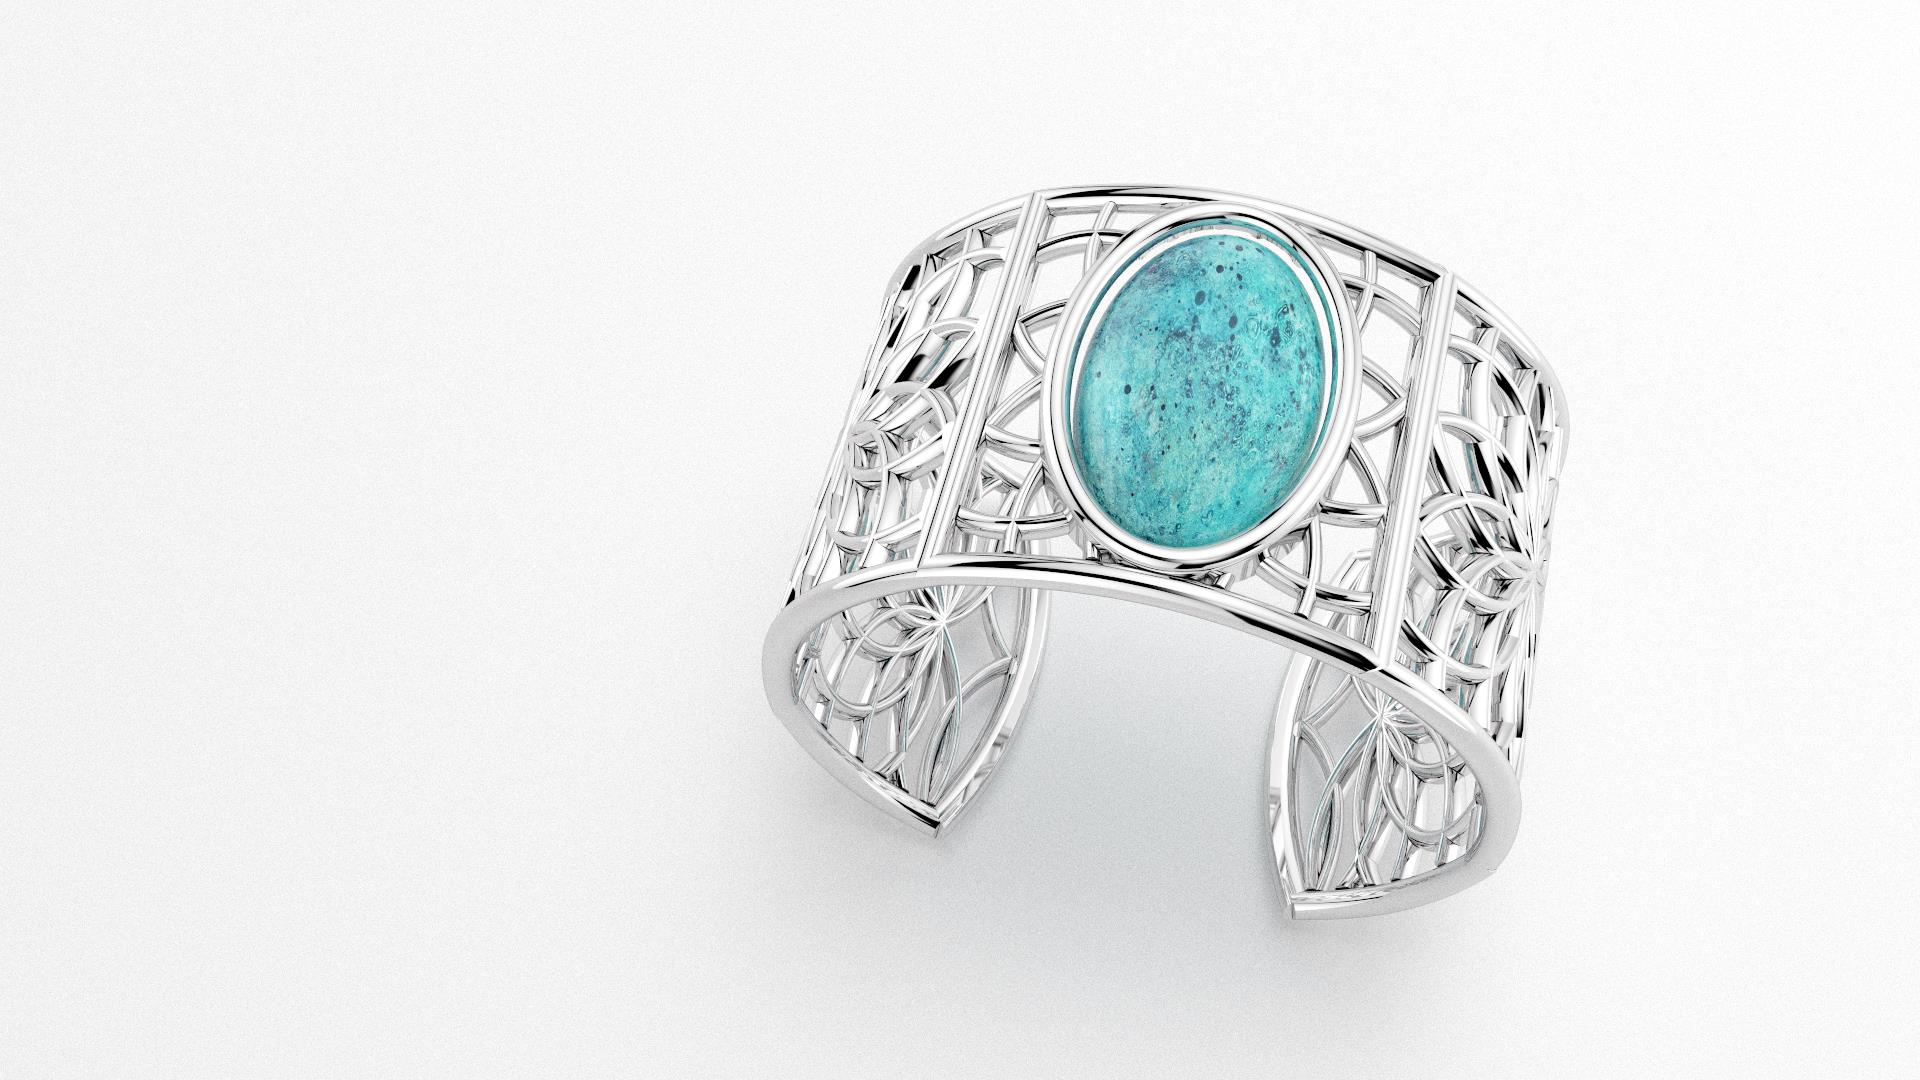 Insurance Appraisals - Our Appraisals are done by GIA Gemologists and include a color picture and full description.Starting at $50.